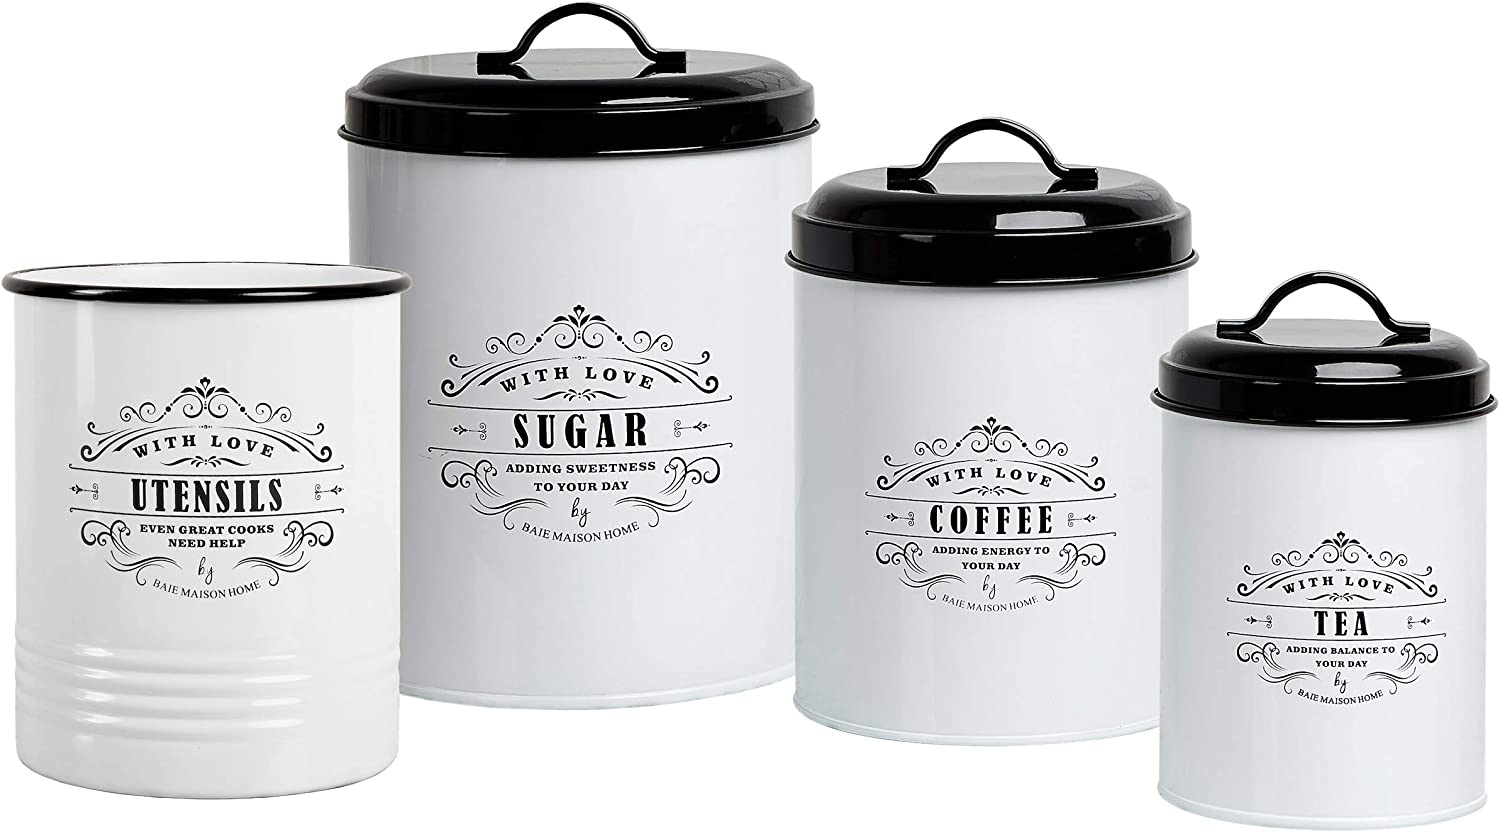 Baie Maison Large Kitchen Canisters Set of 3 - Farmhouse Canister Sets for Kitchen Counter White - Coffee Tea Sugar Container and Matching Kitchen Utensil Holder for Countertop Cooking Utensils Caddy